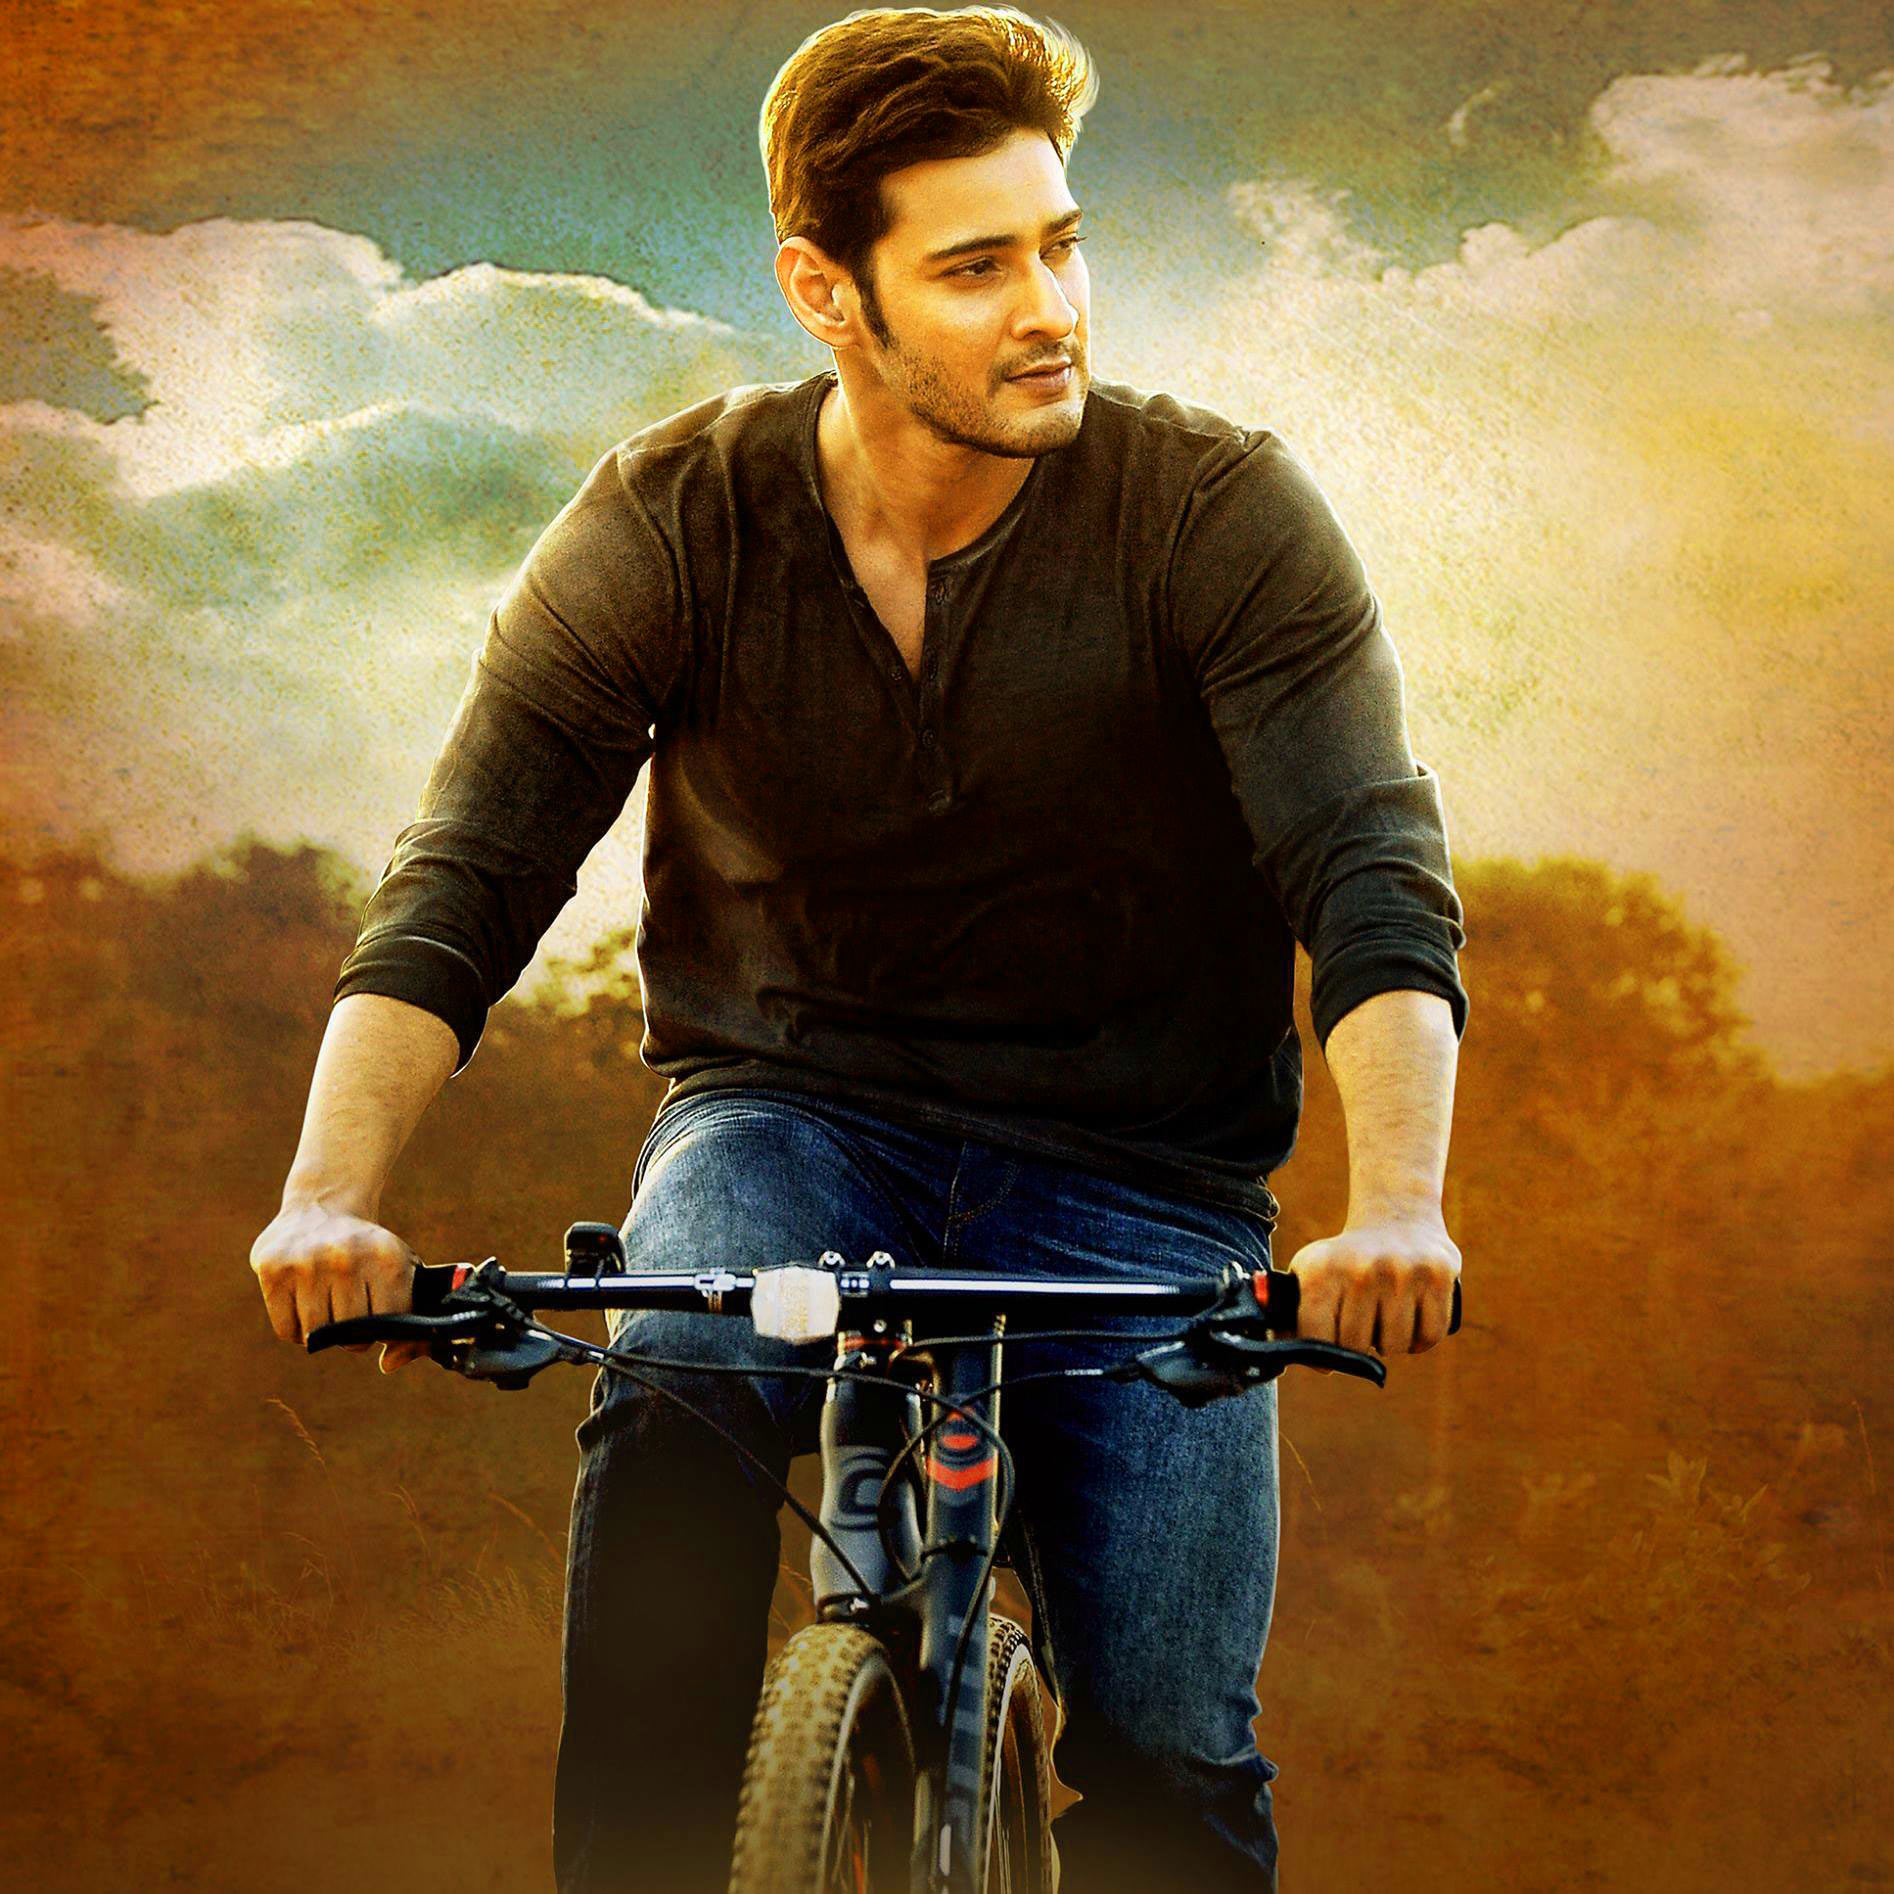 Mahesh babu photo 31